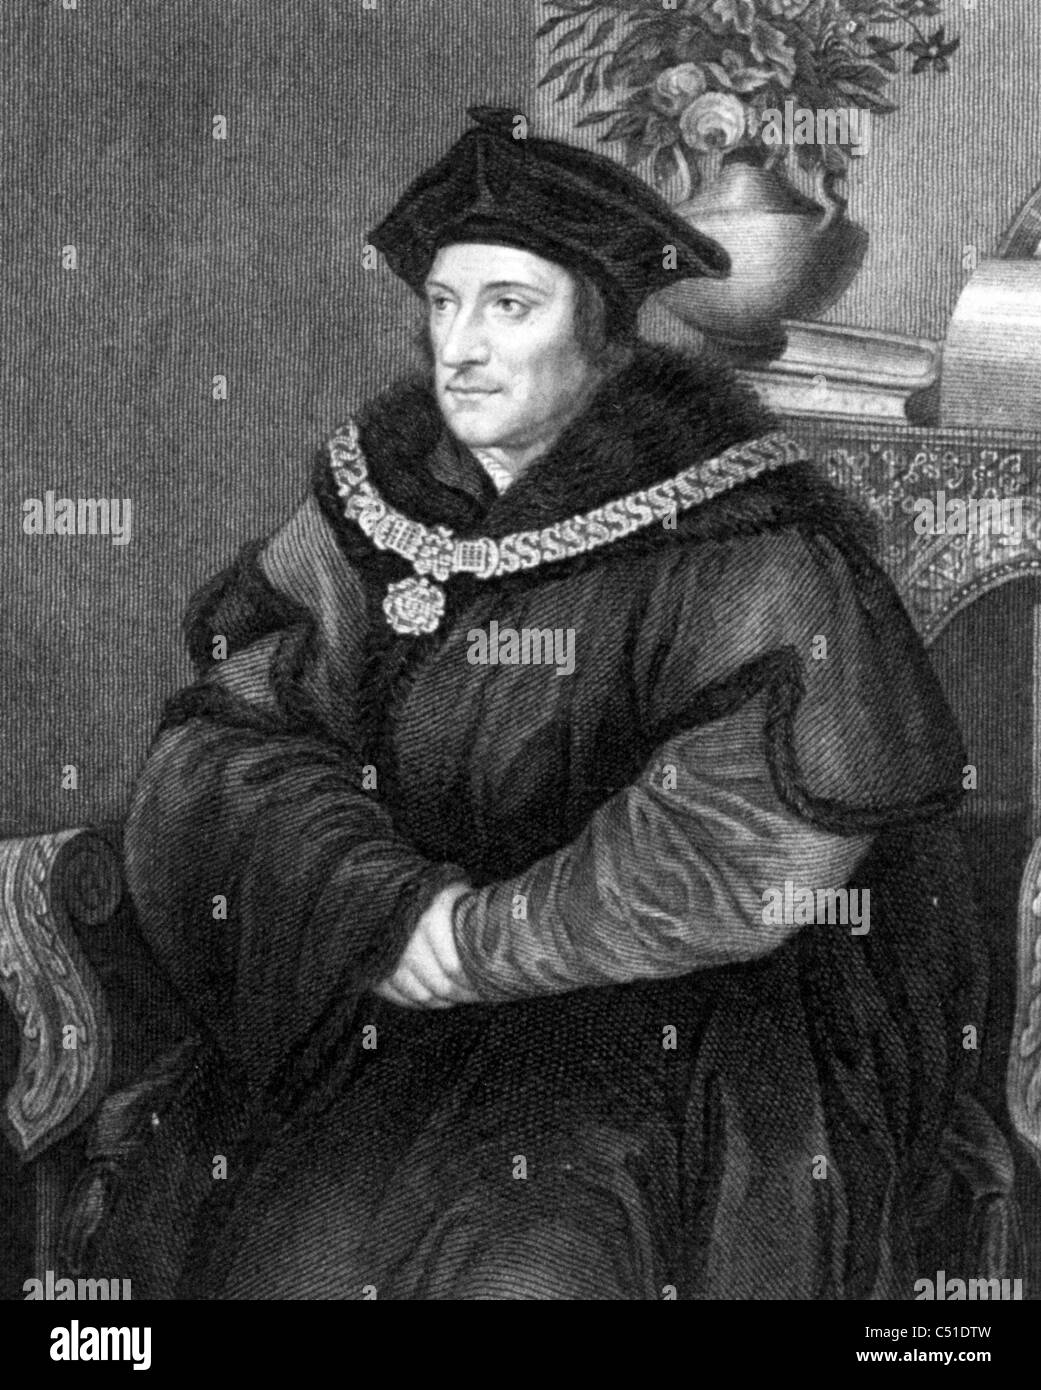 sir thomas more Sir thomas more settled in chelsea in about 1520 and built himself a house  there it stood on the site of the present beaufort street, in spacious, formal  grounds.